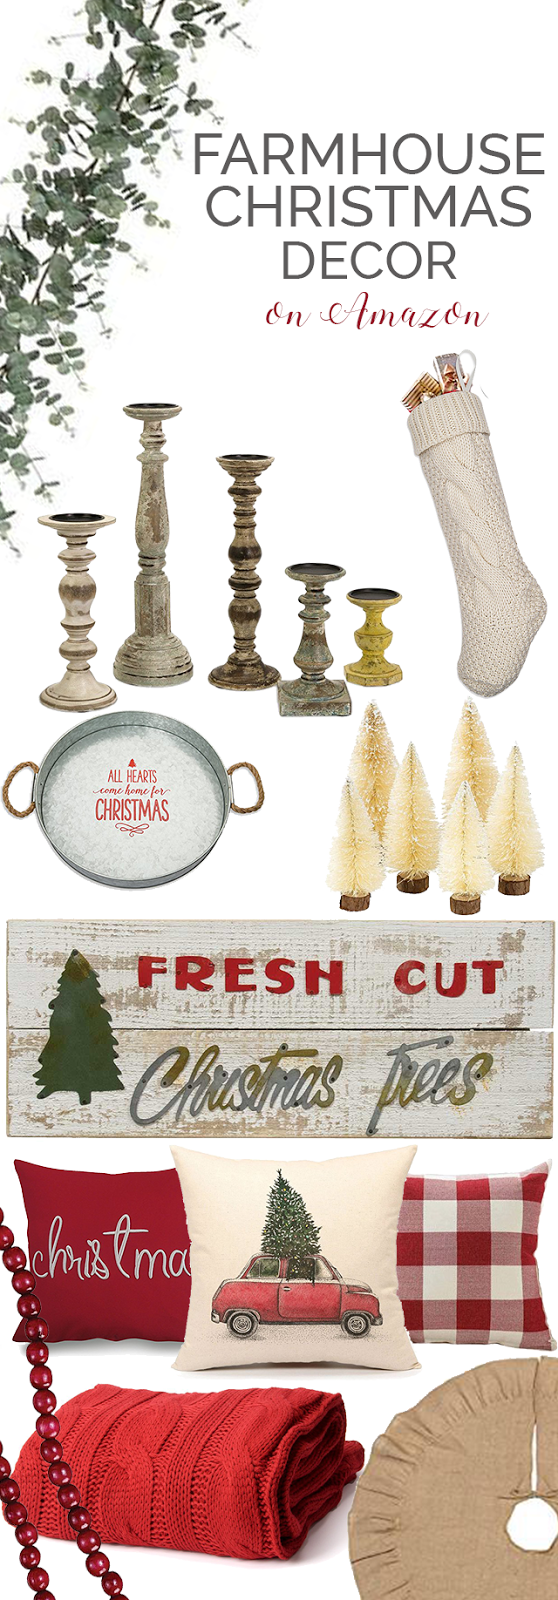 farmhouse christmas decor and decorating ideas - Amazon Christmas Decorations